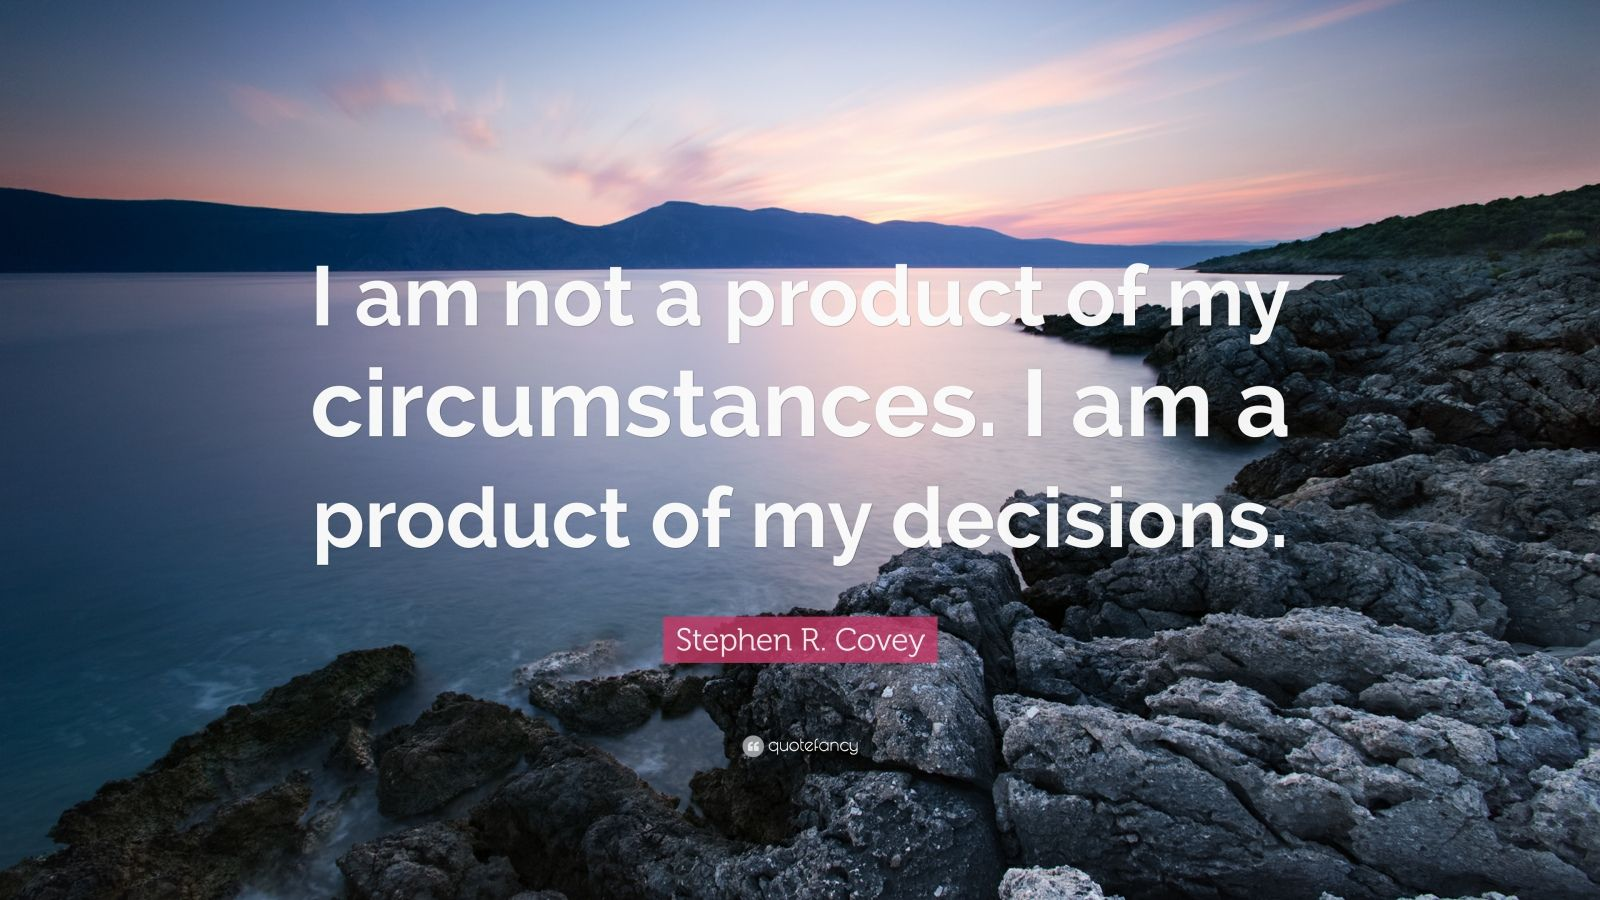 """Stephen R. Covey Quote: """"I am not a product of my circumstances. I am a product of my decisions."""""""